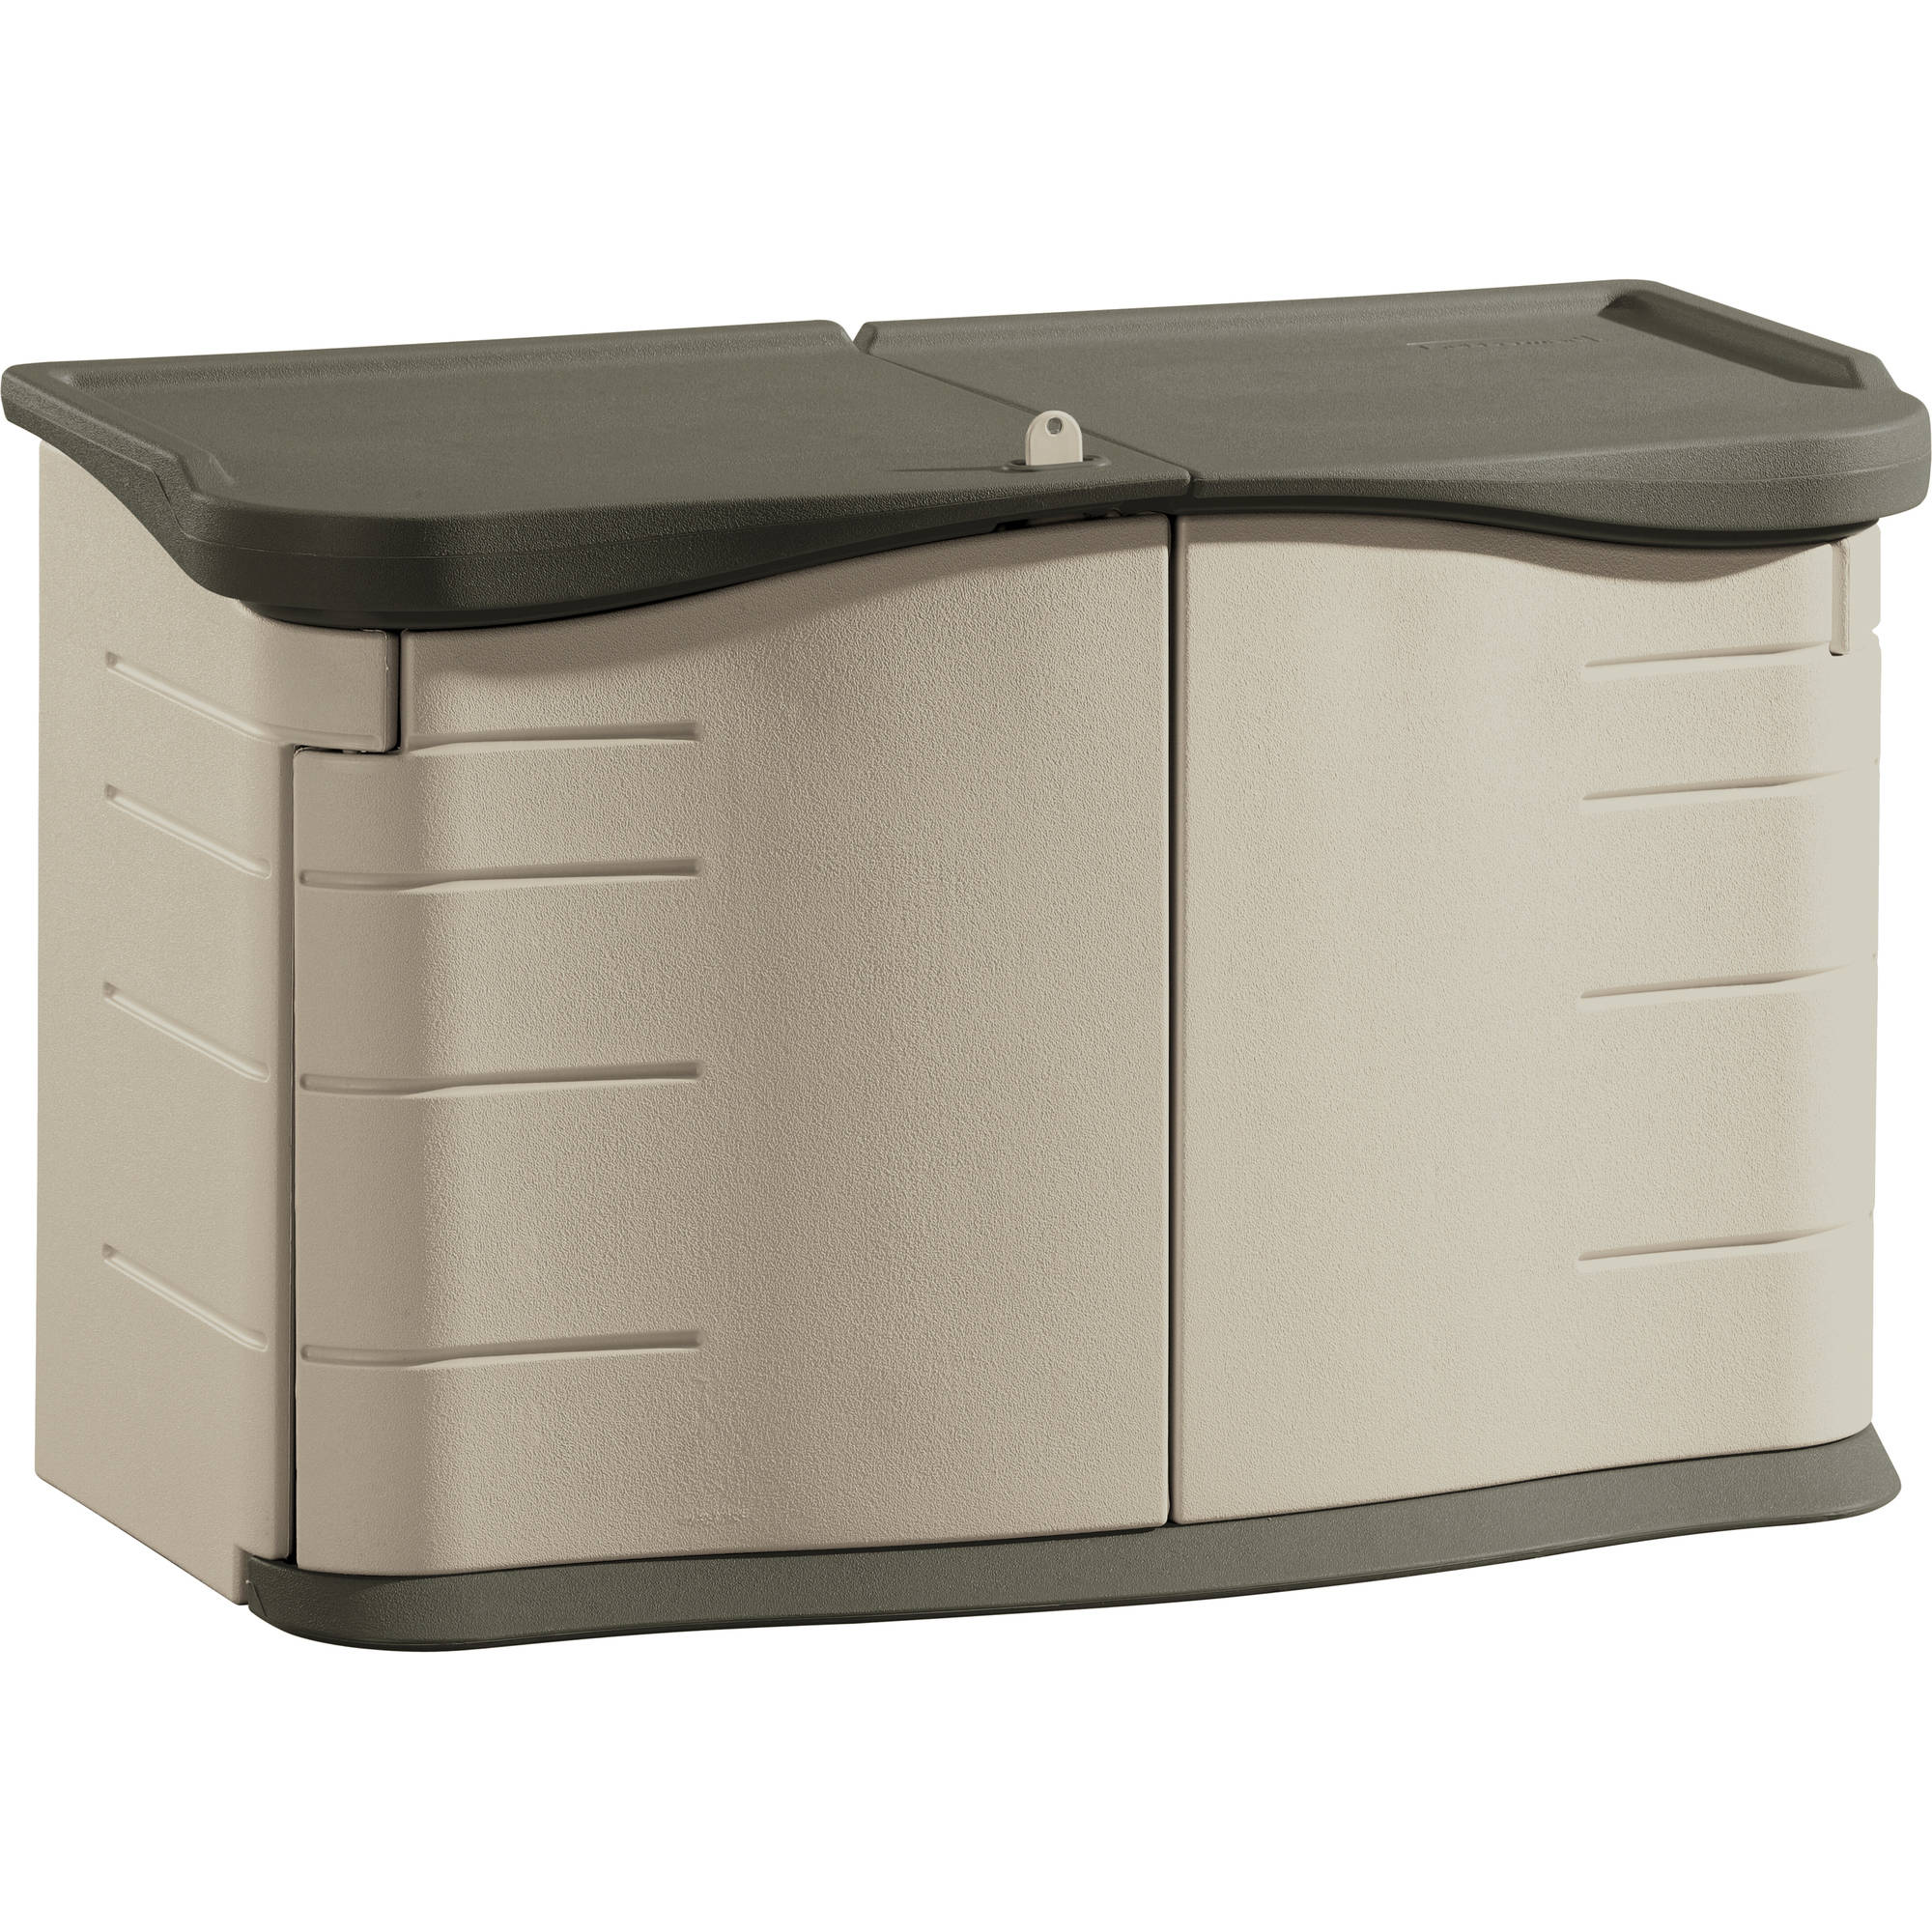 Rubbermaid Storage Bench | Rubbermaid Patio Storage | Pool Storage Containers